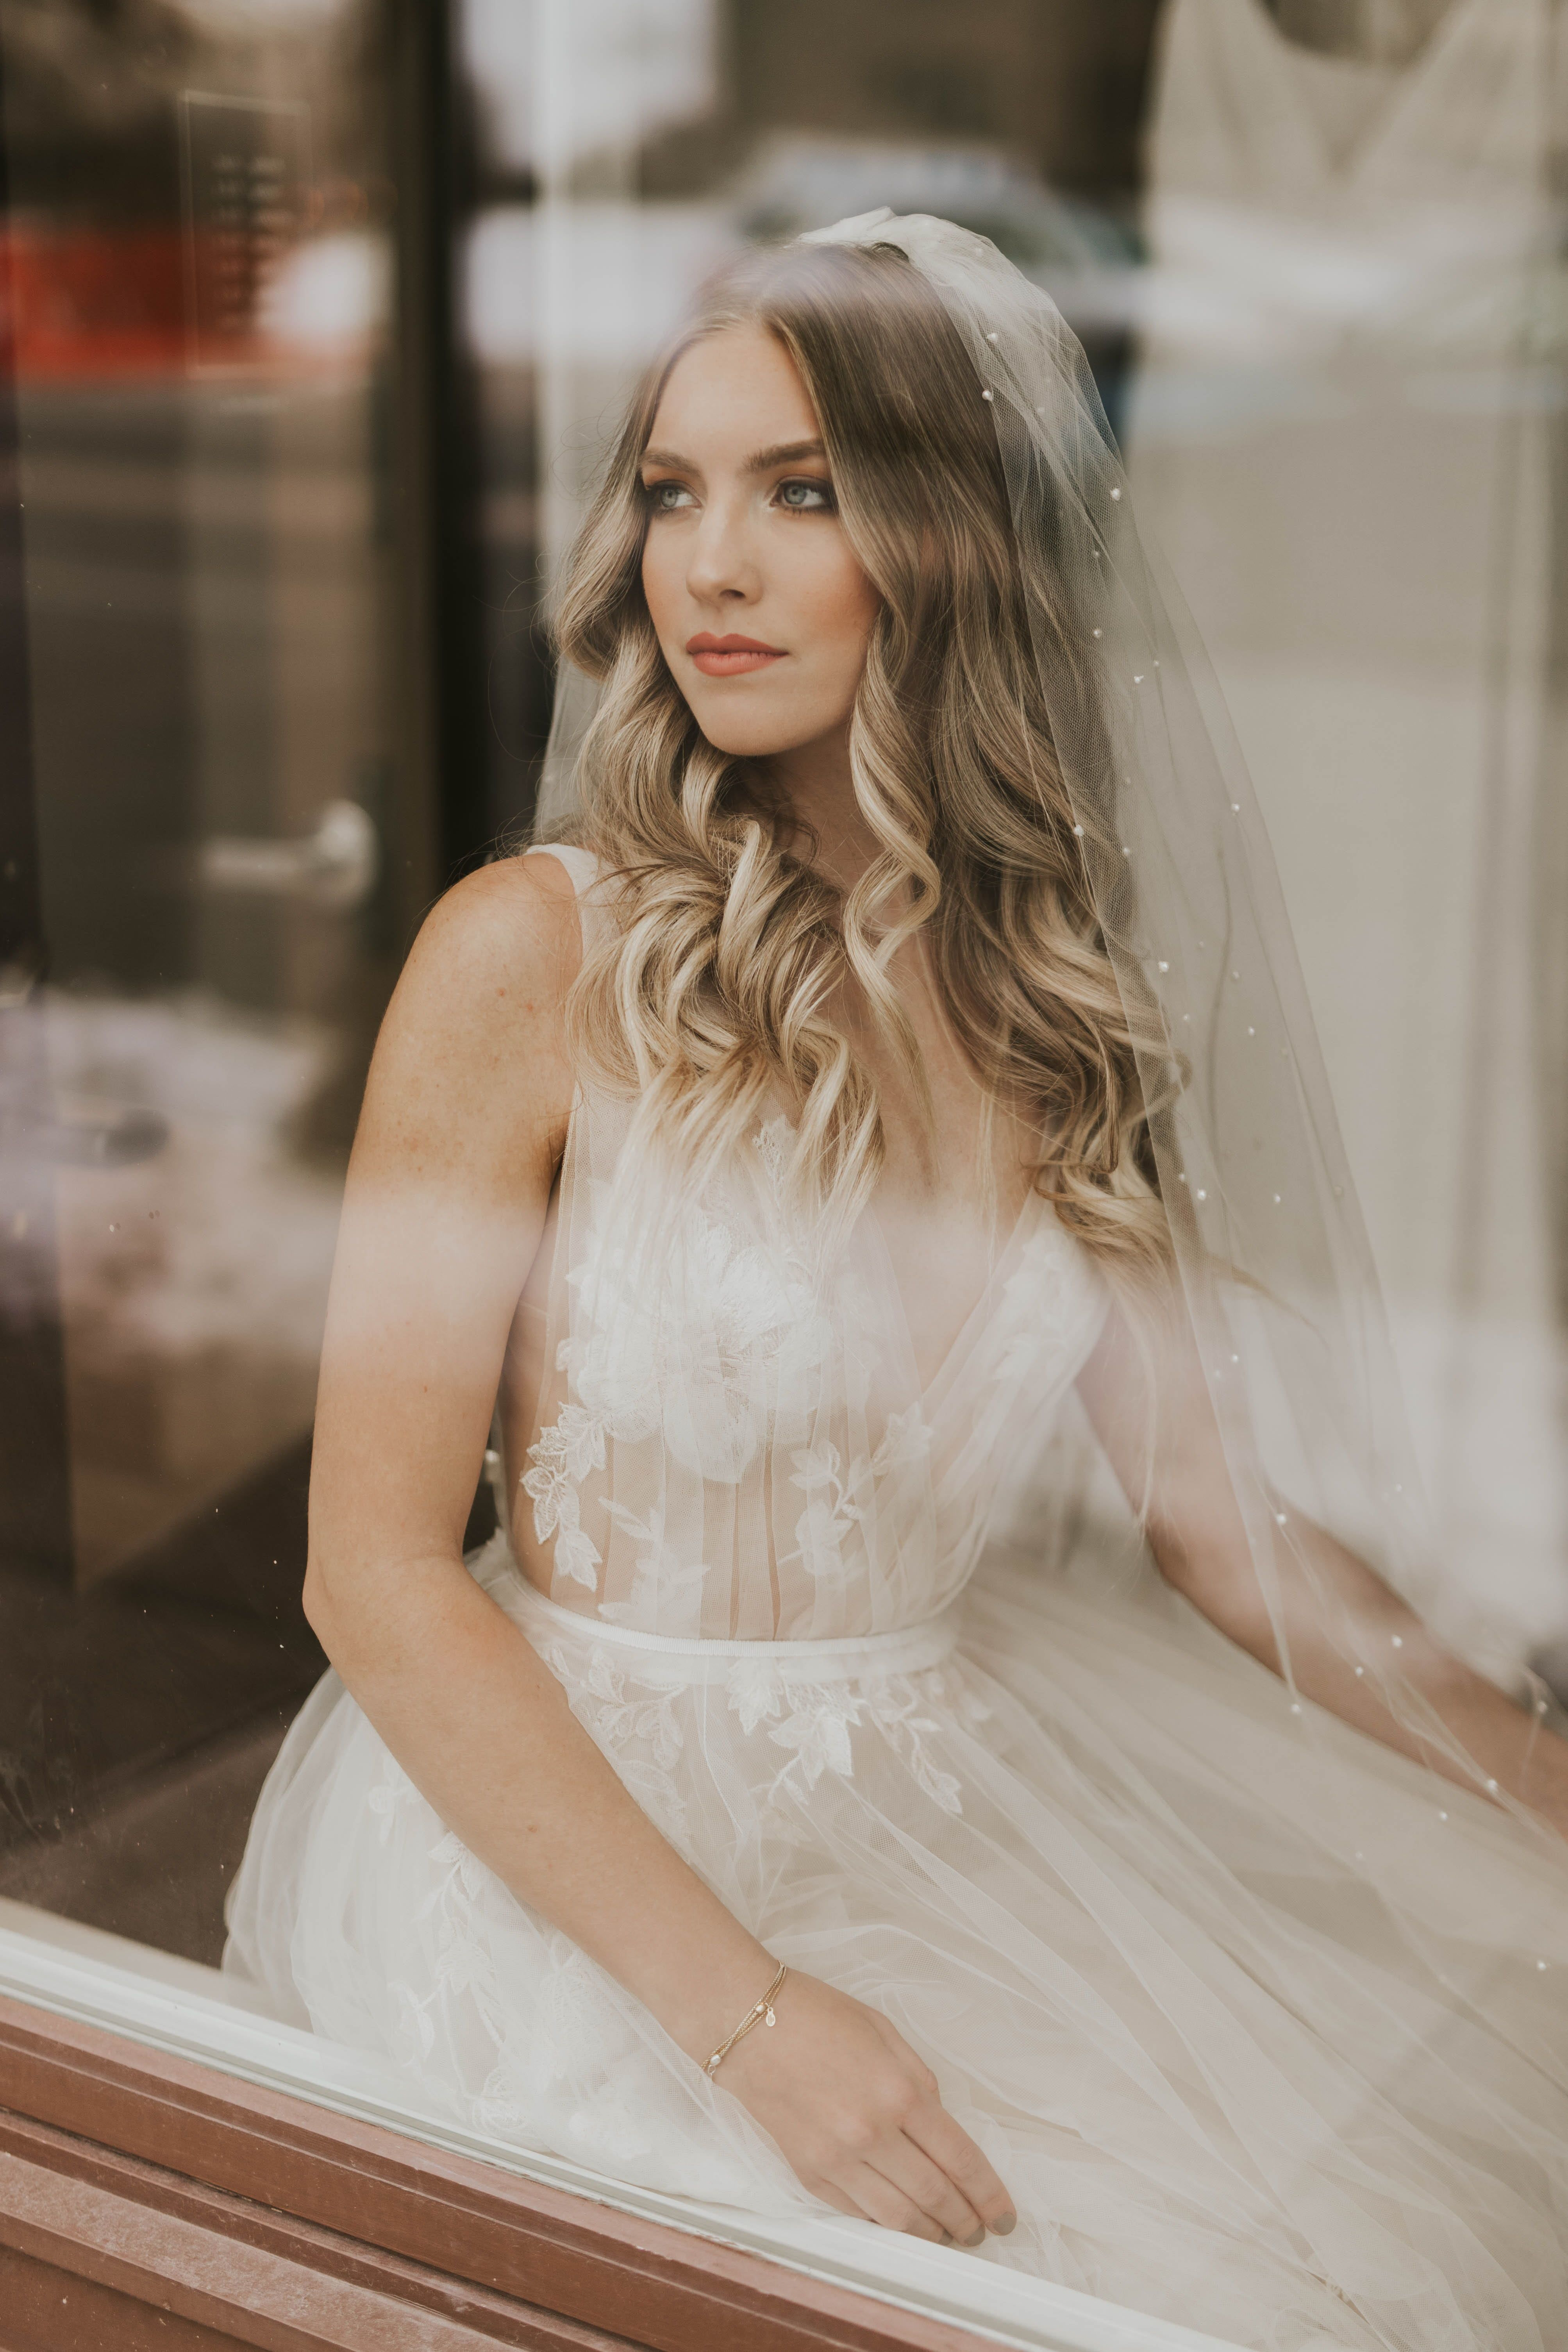 cb1ff5da0 Lainie by Willowby | Available at Minneapolis, Dallas, Denver, Miami,  Seattle + Portland a&bé bridal shops | Tulle aline wedding dress with large  floral ...